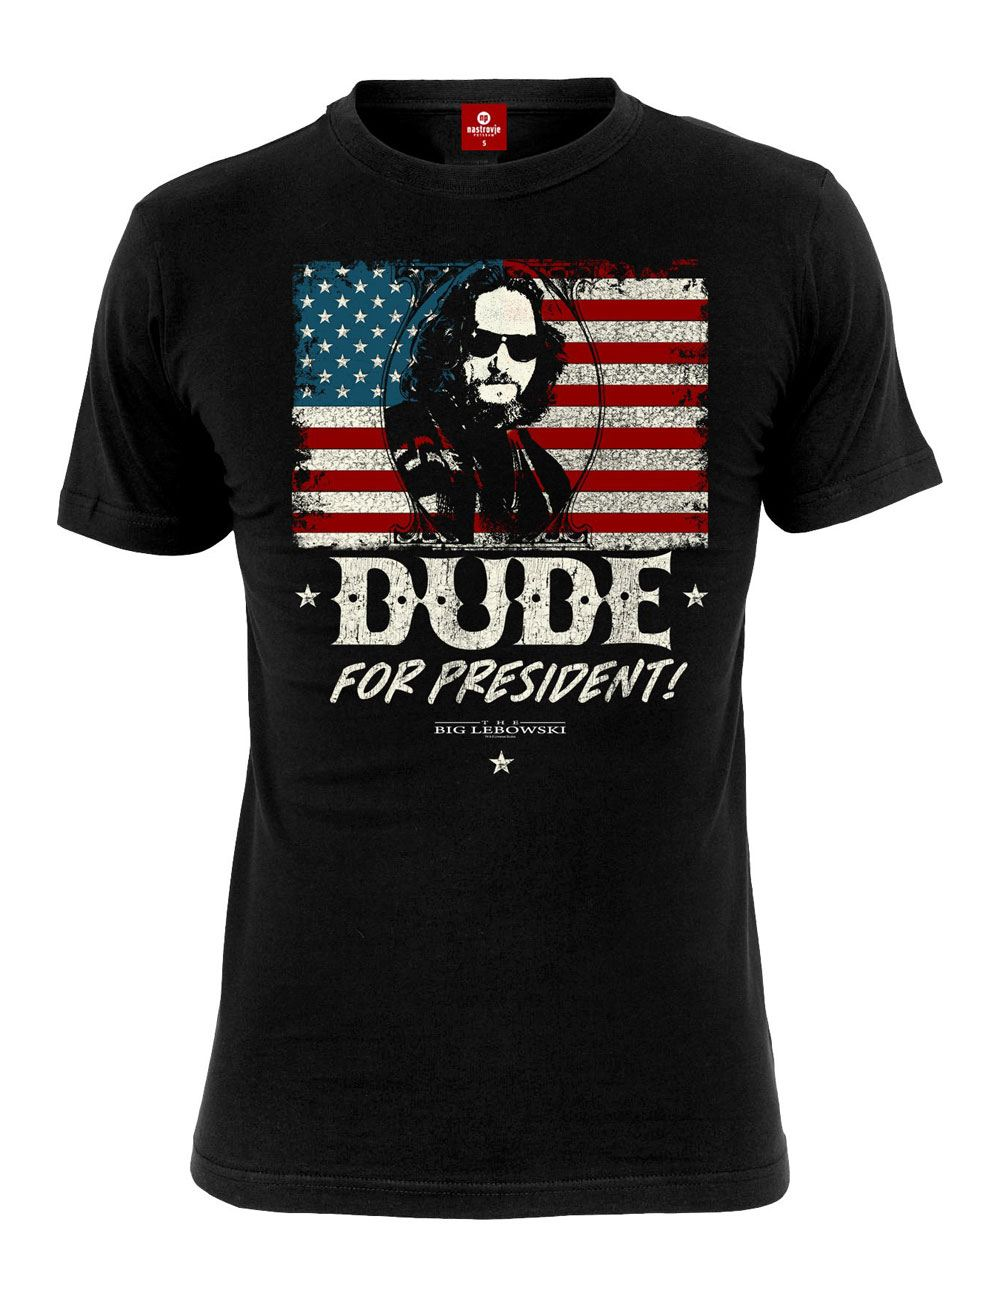 The Big Lebowski T-Shirt Dude for President Size L